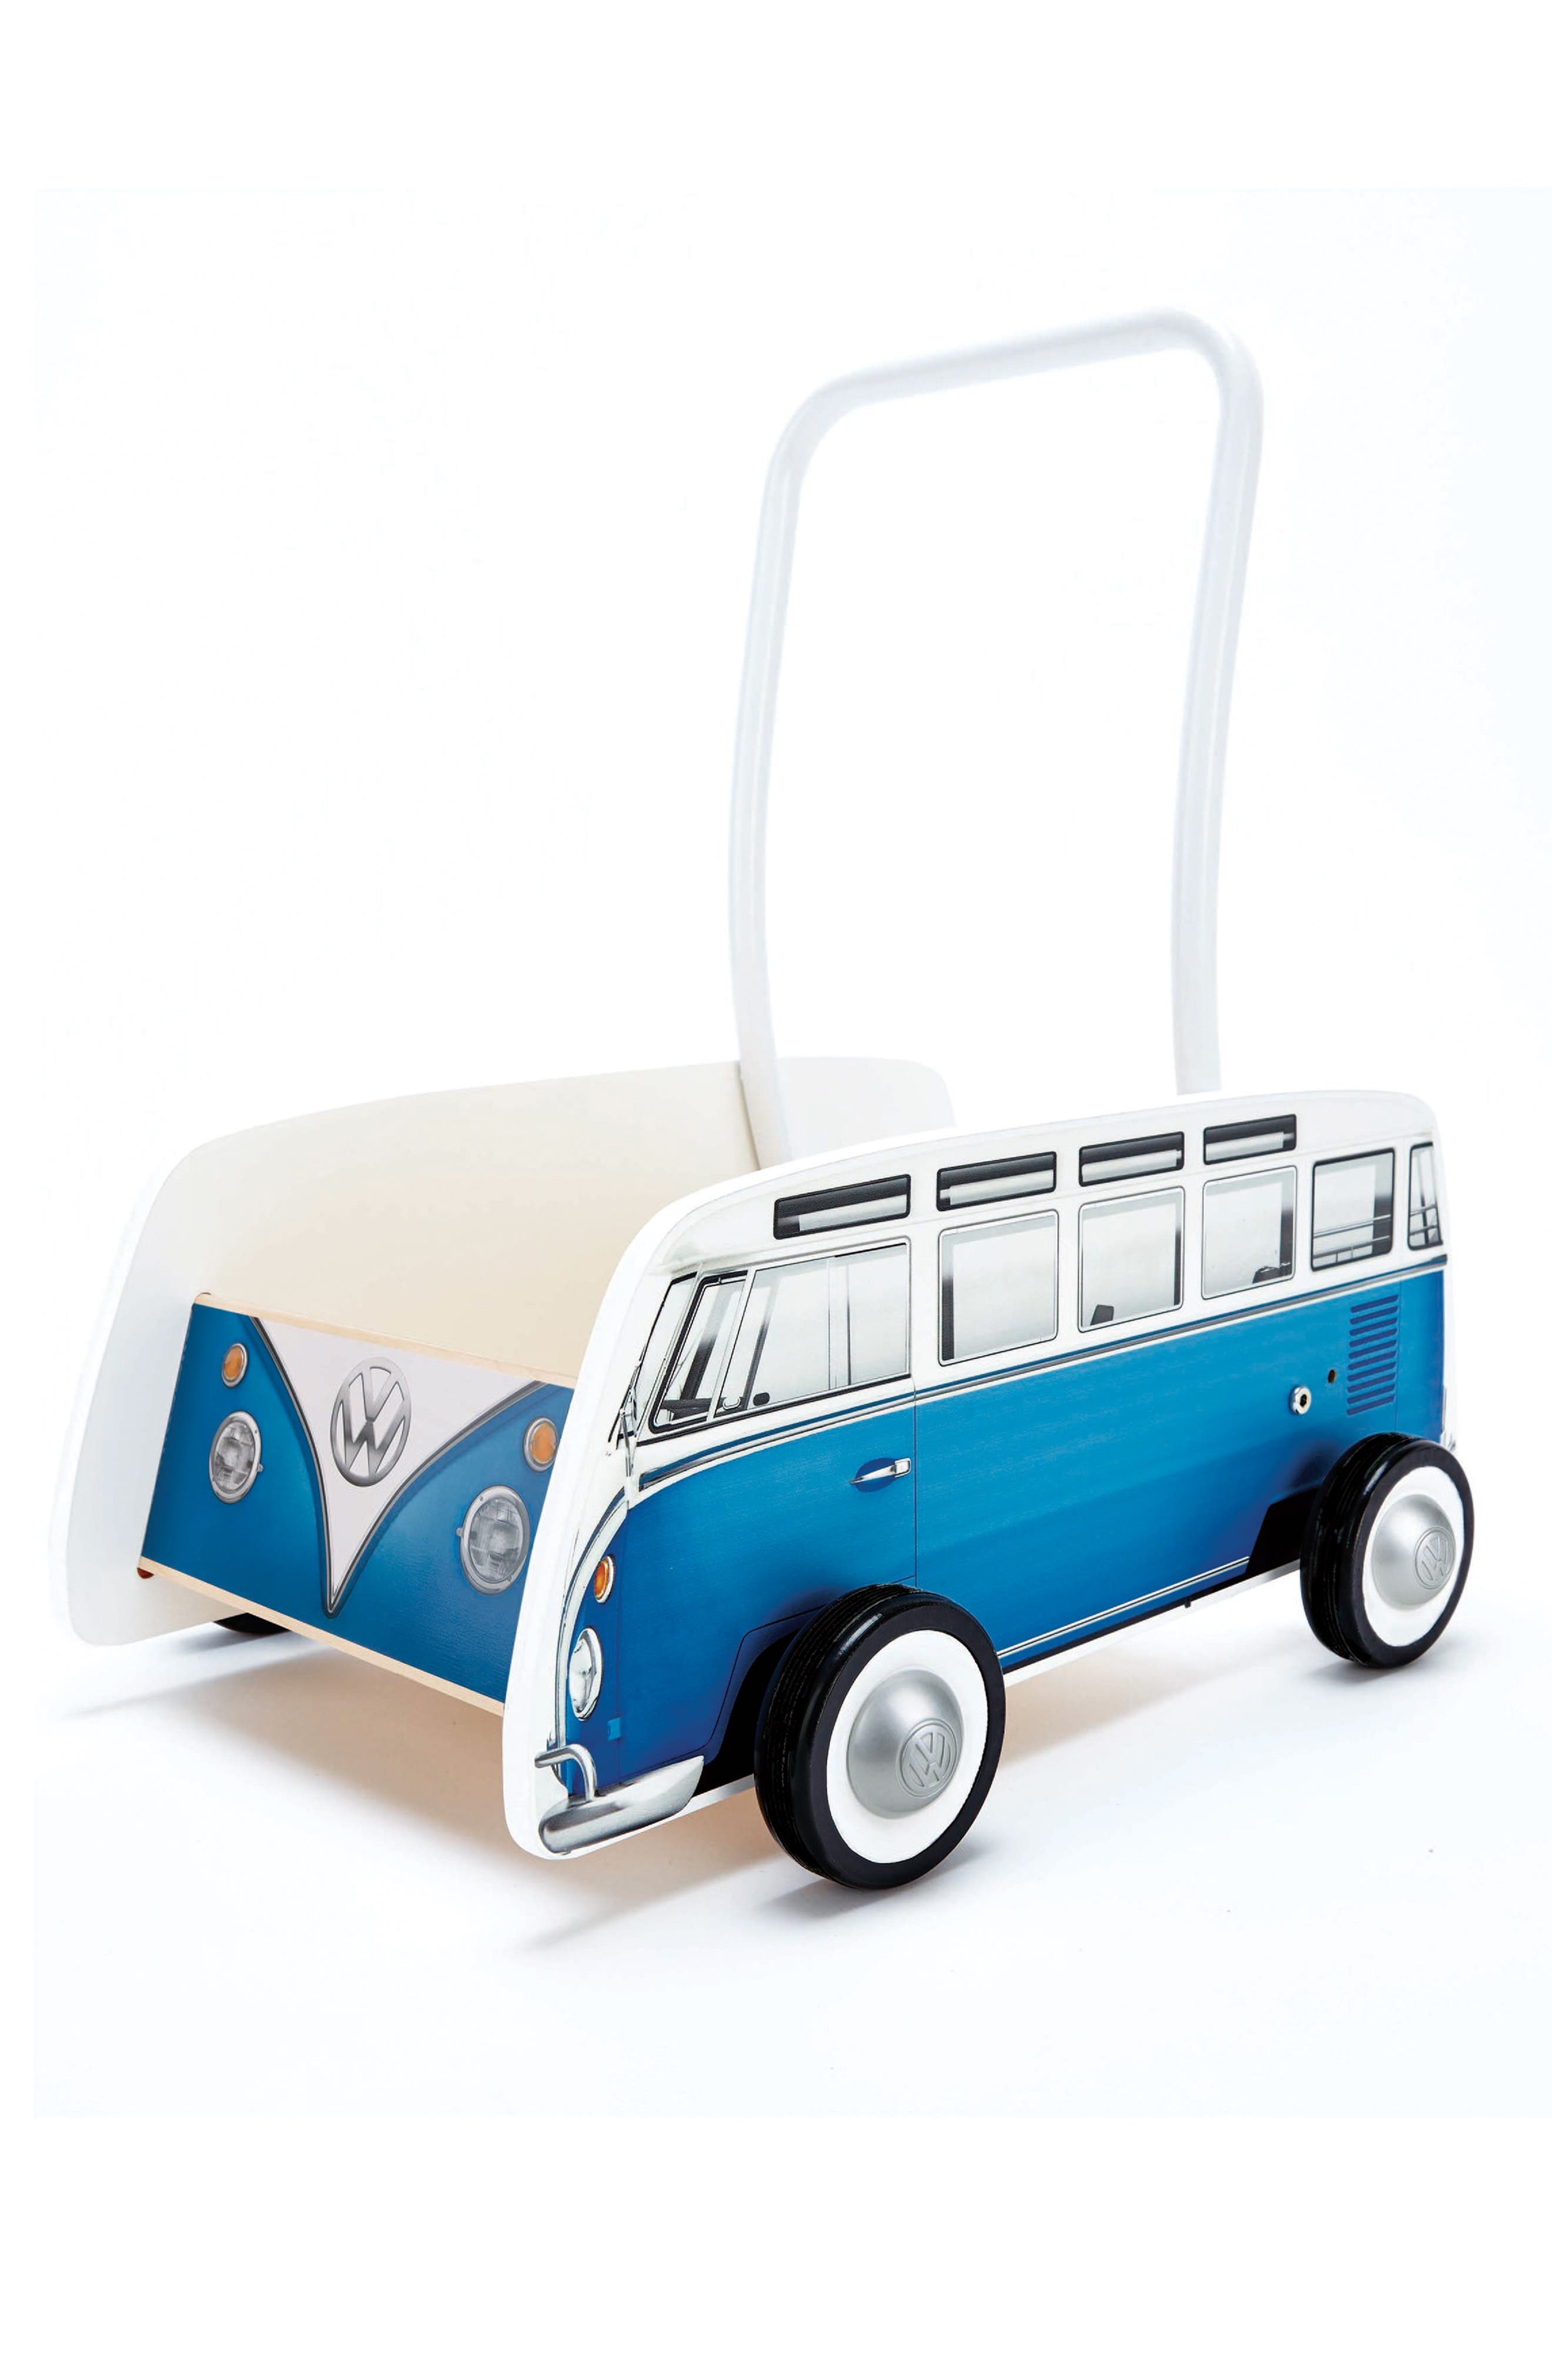 Classical VW Push Bus,                             Main thumbnail 1, color,                             400